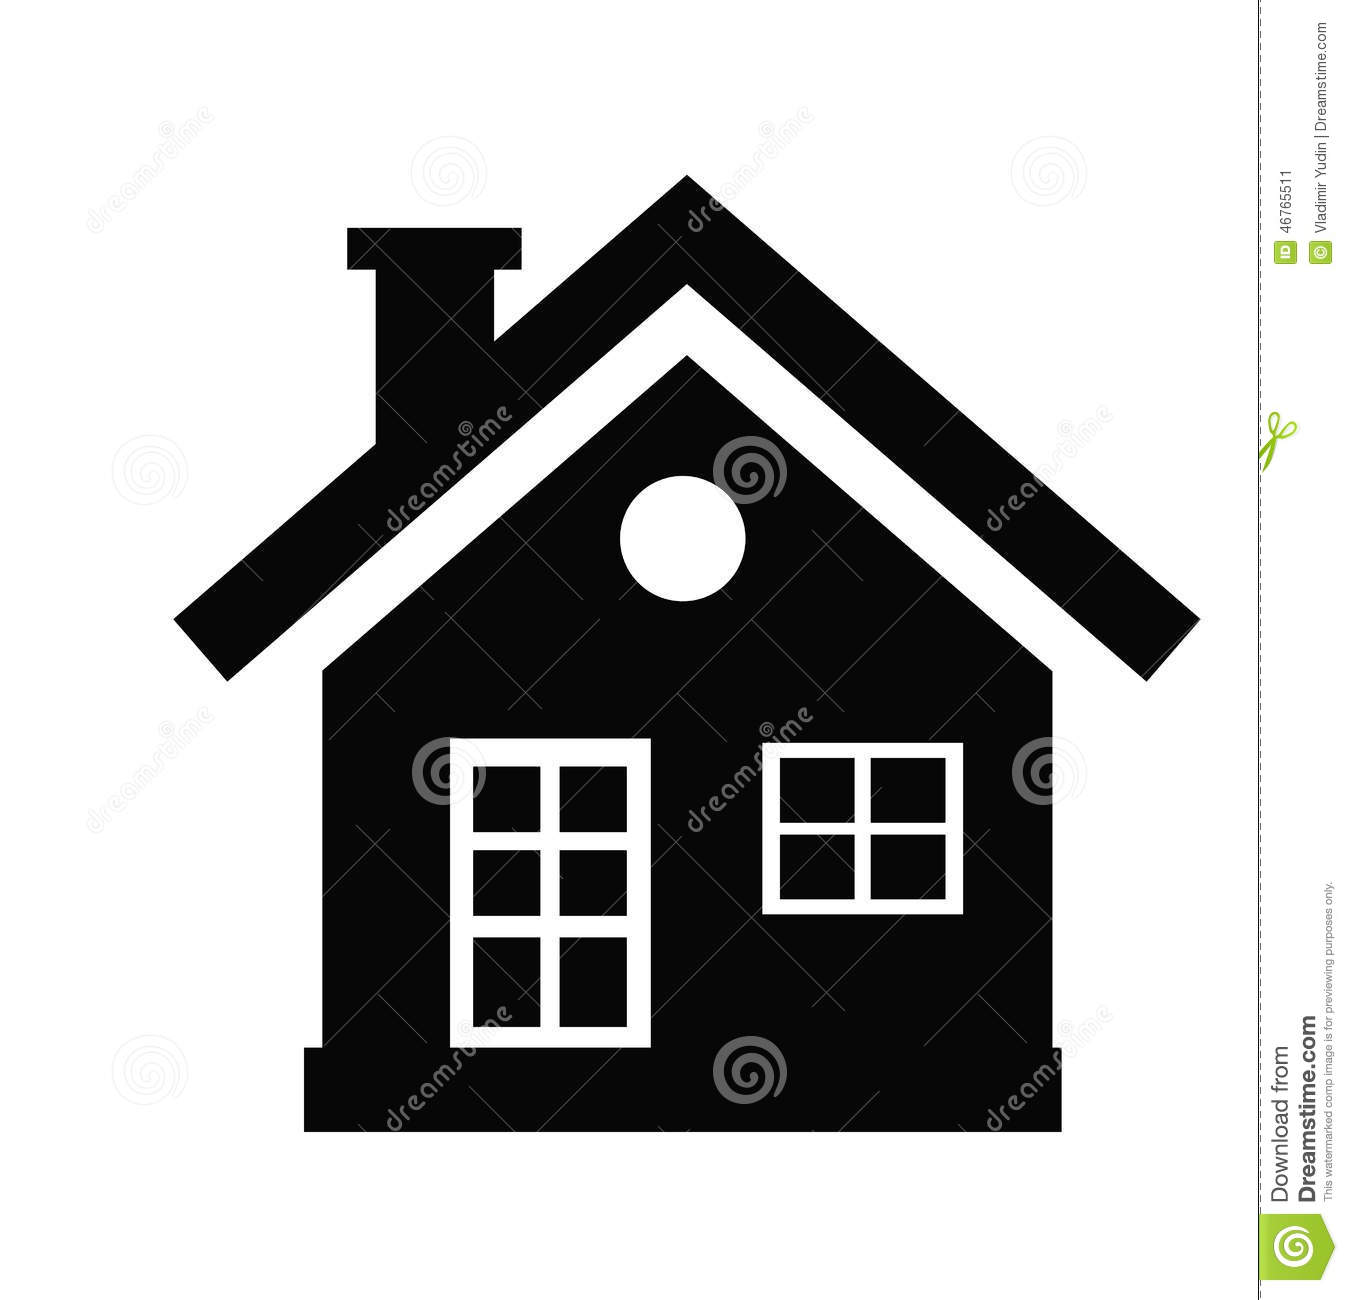 c2afb35a76c6 House icon stock vector. Illustration of vector, shelter - 46765511